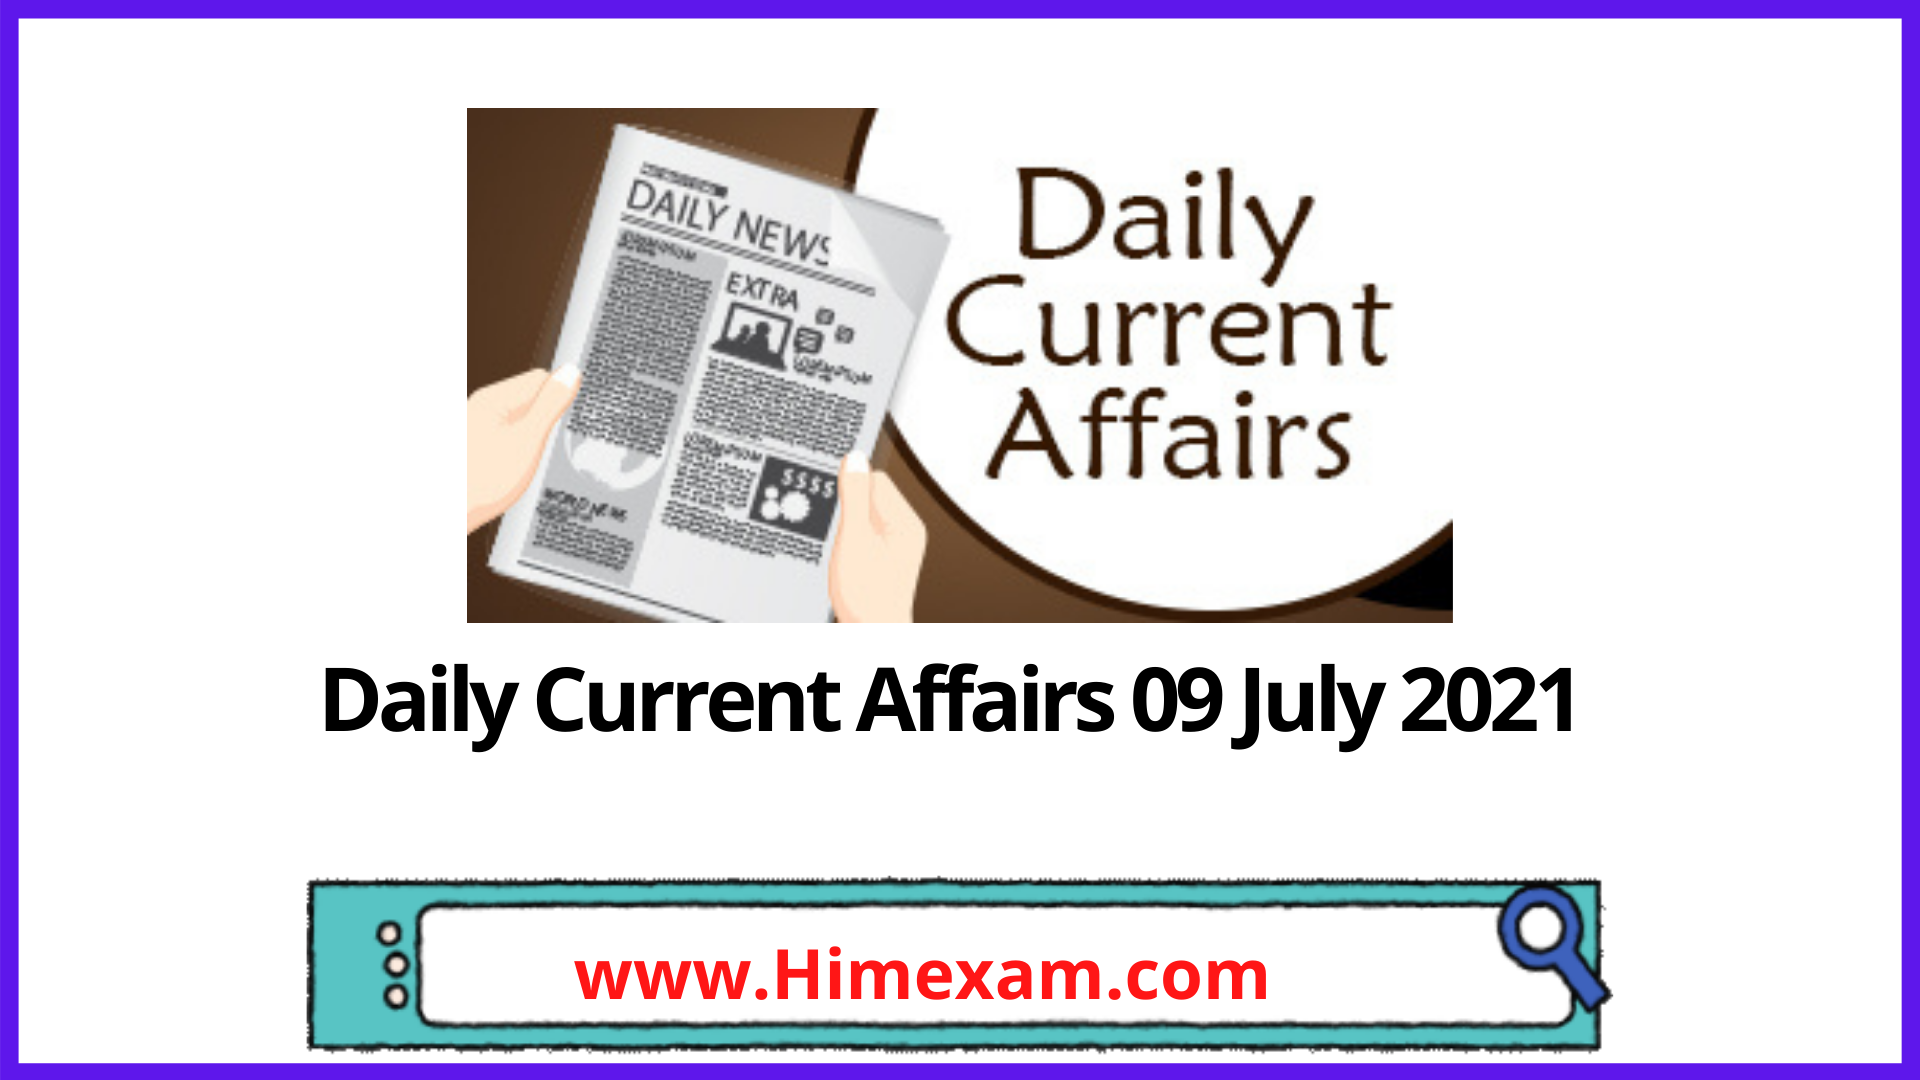 Daily Current Affairs 09 July 2021